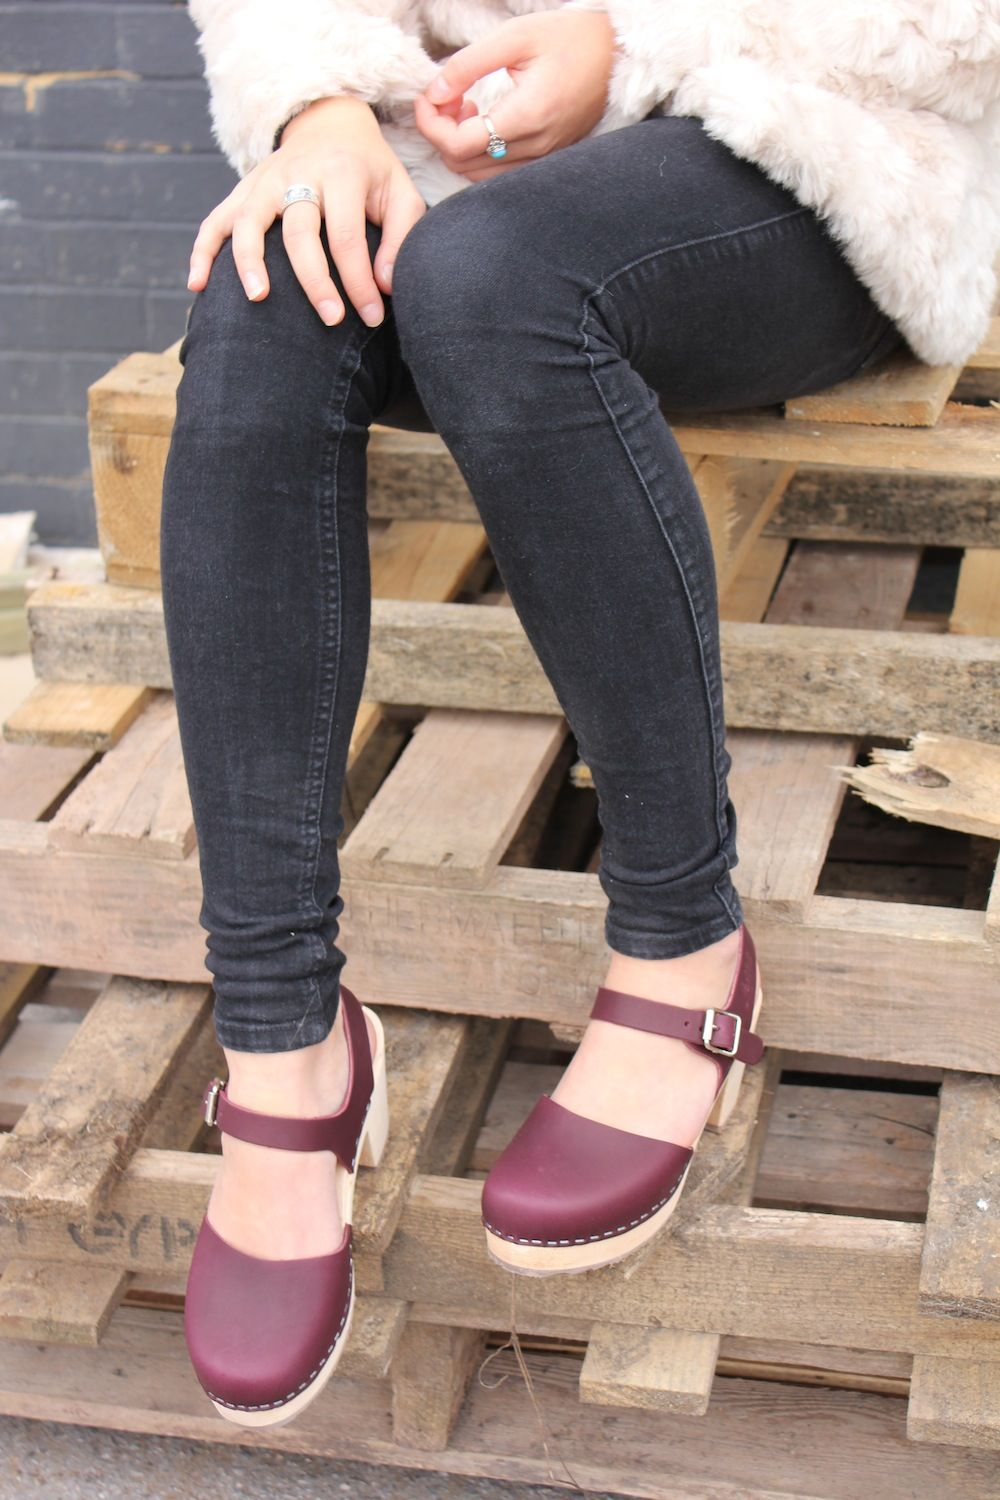 best website 22858 78843 Lotta From Stockholm Clogs, platform, clogs, style, grey, black jeans,  autumn, style, fashion, shoes